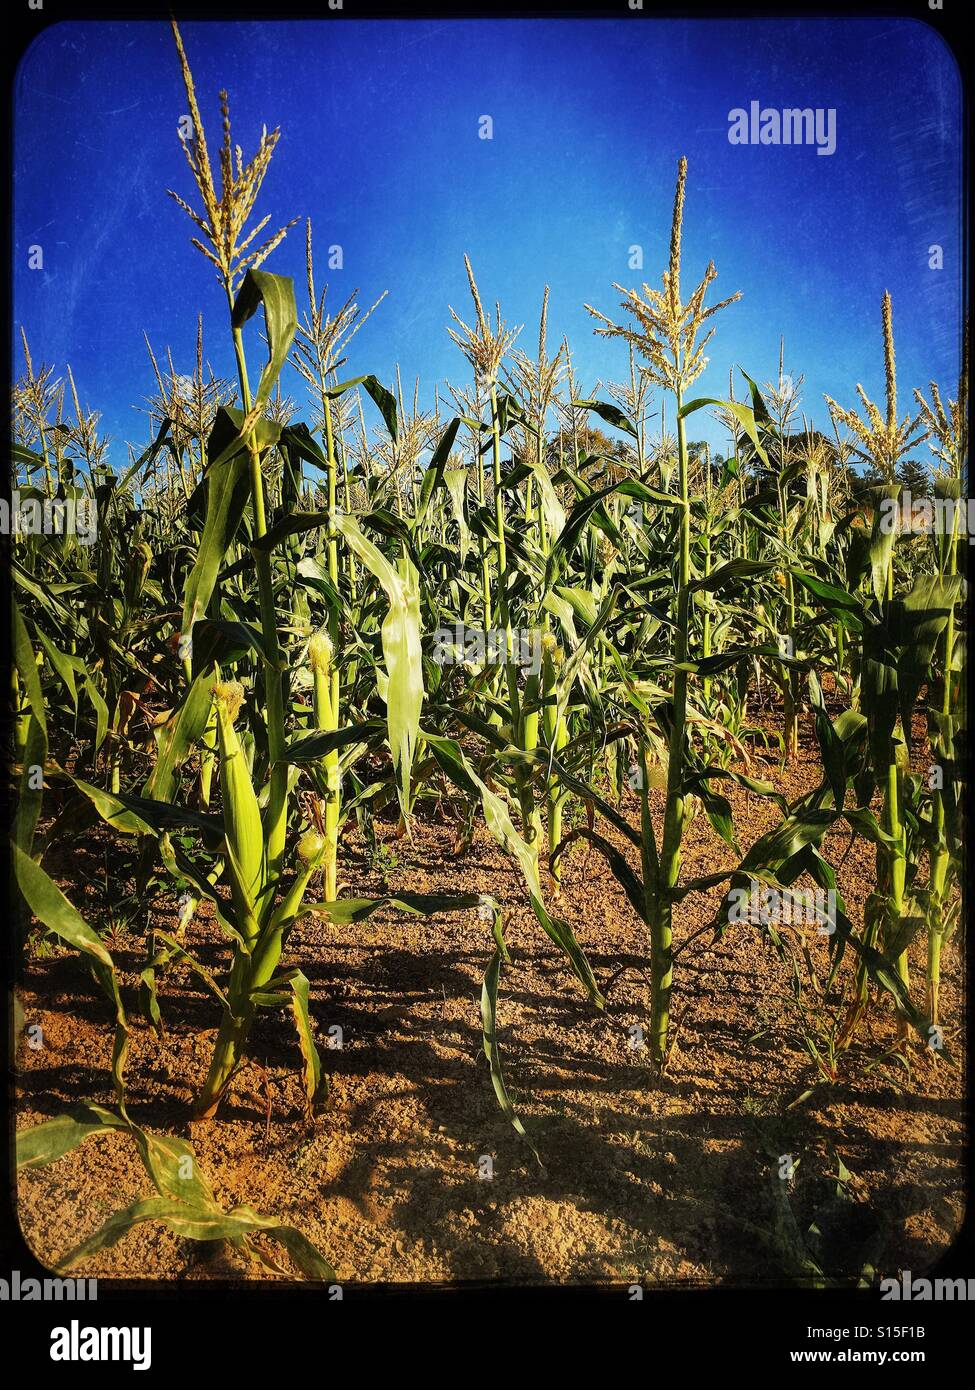 Corn stalks with young corn - Stock Image